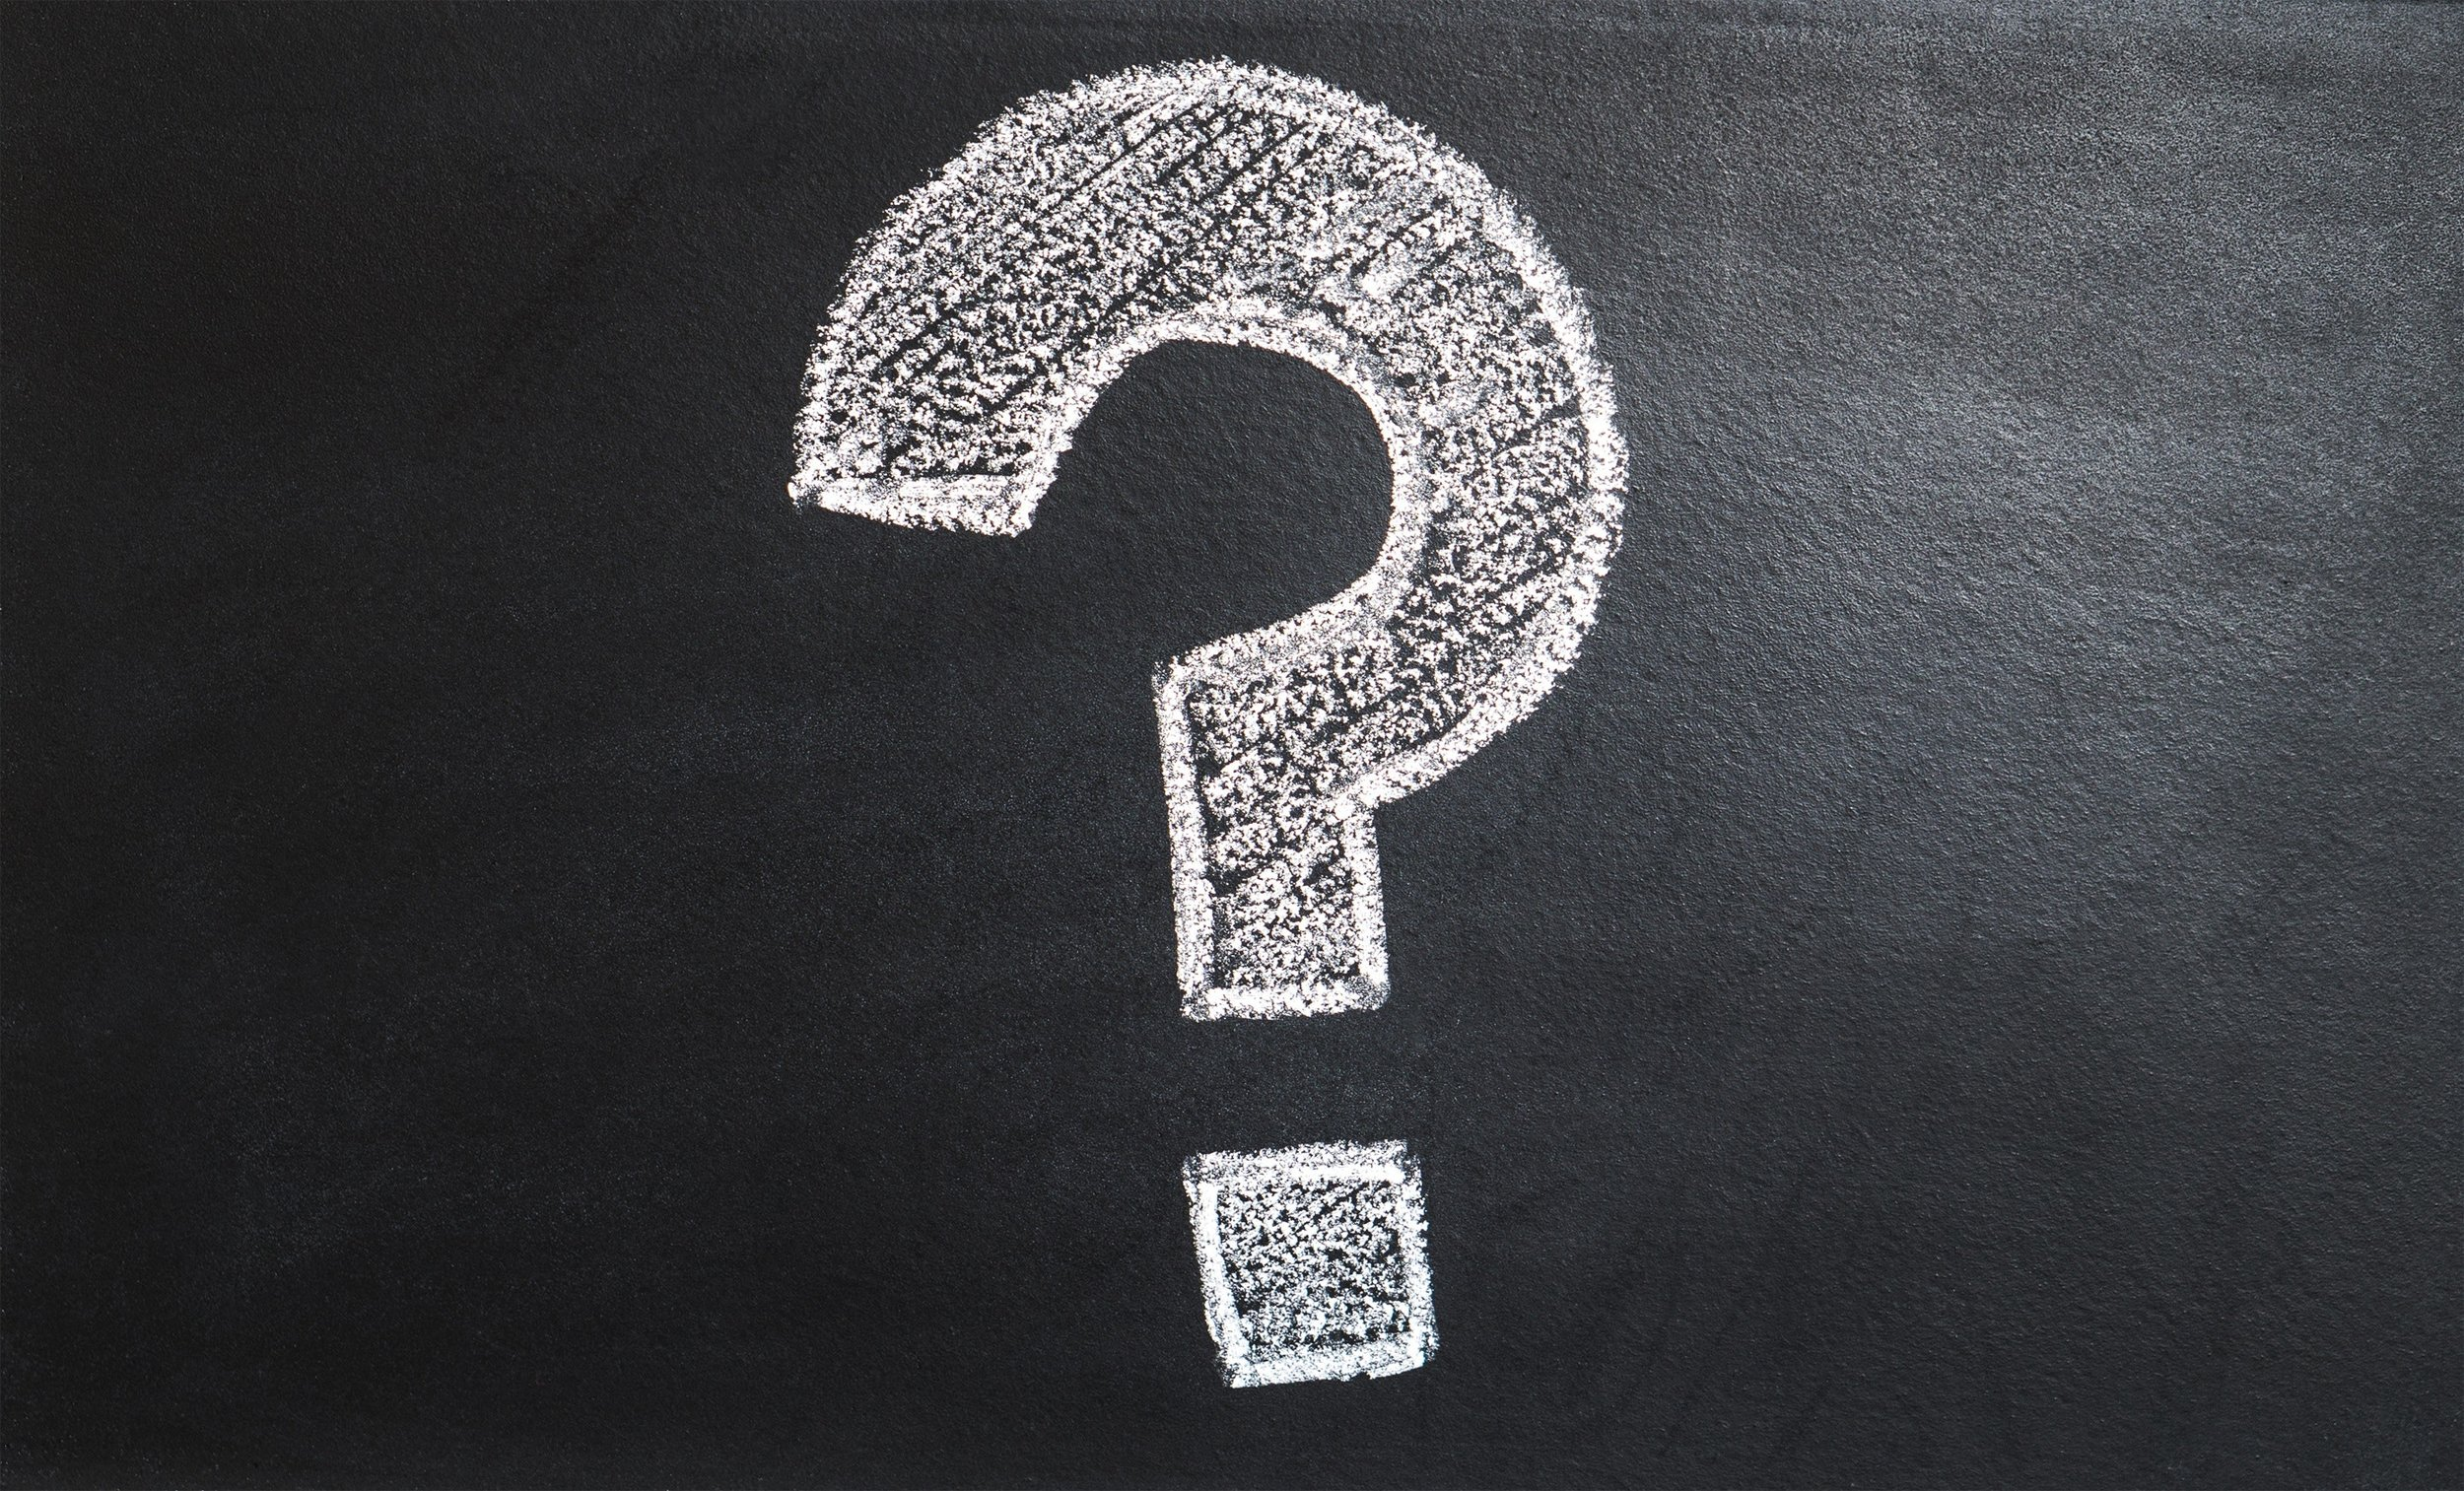 The Image above is a picture of a question mark drawn onto a blackboard.